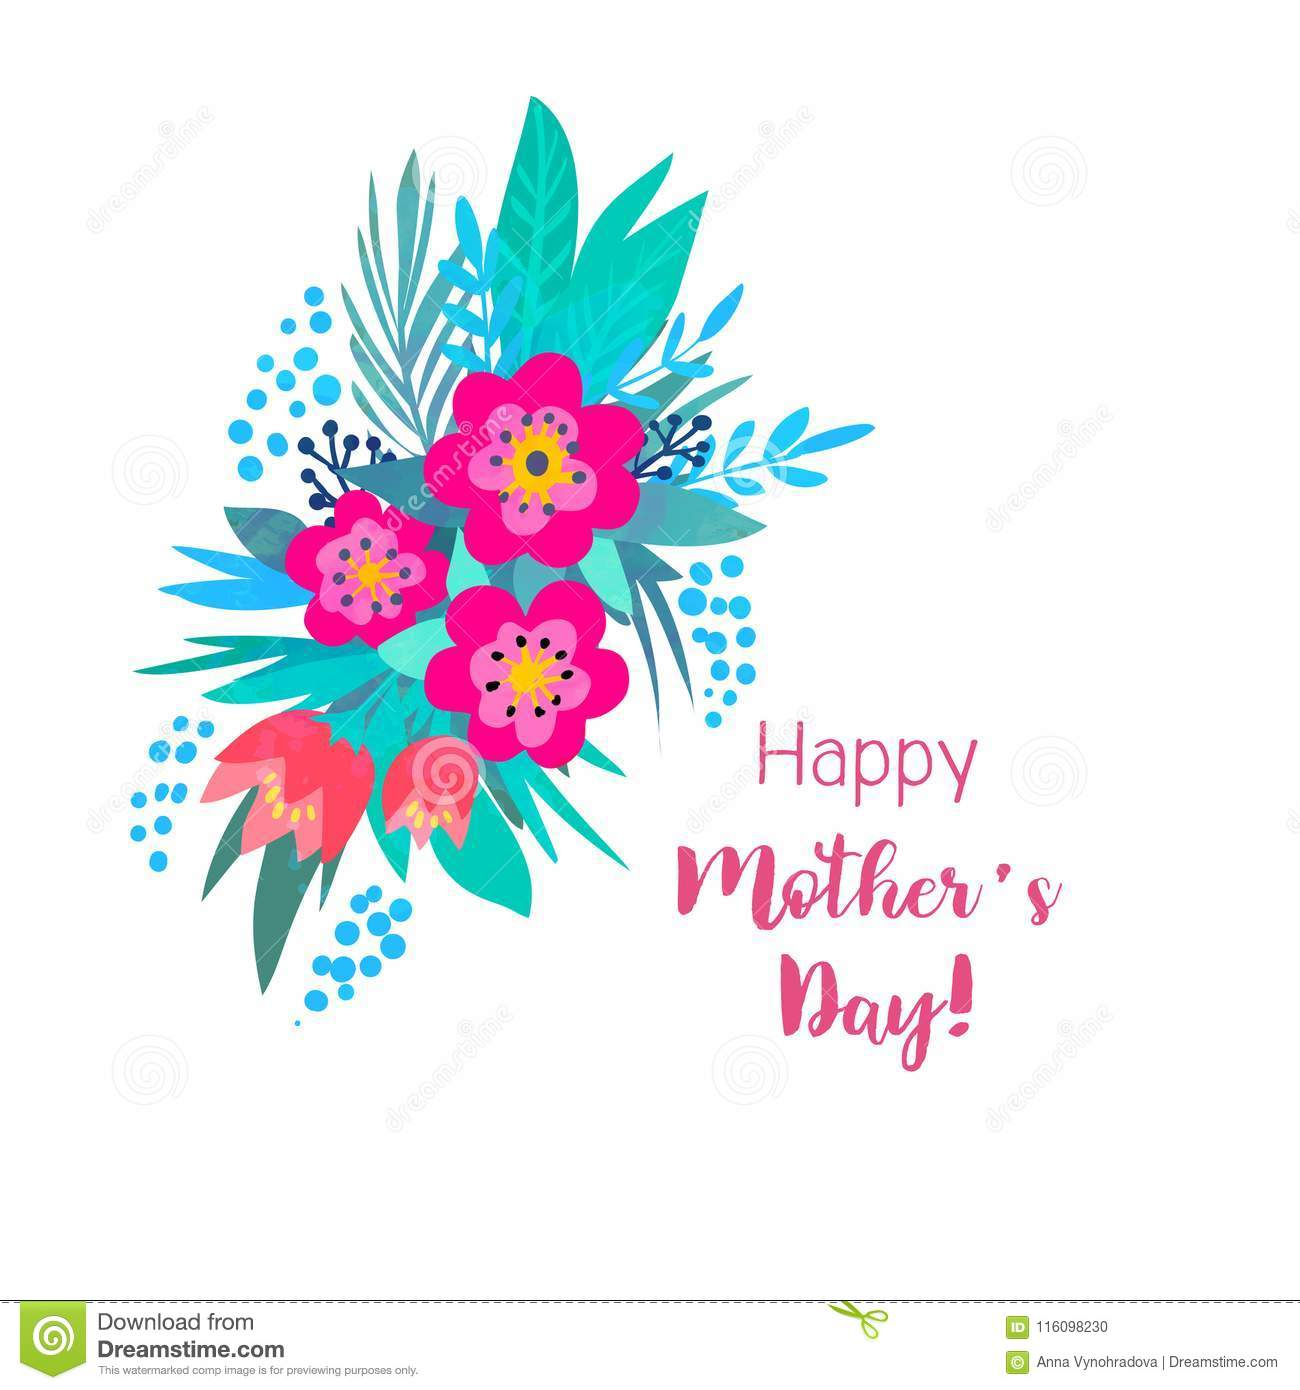 Vector Illustration Summer Flowers Bright May Be Used For Birthday Cards Happy March 8 Mother S Day